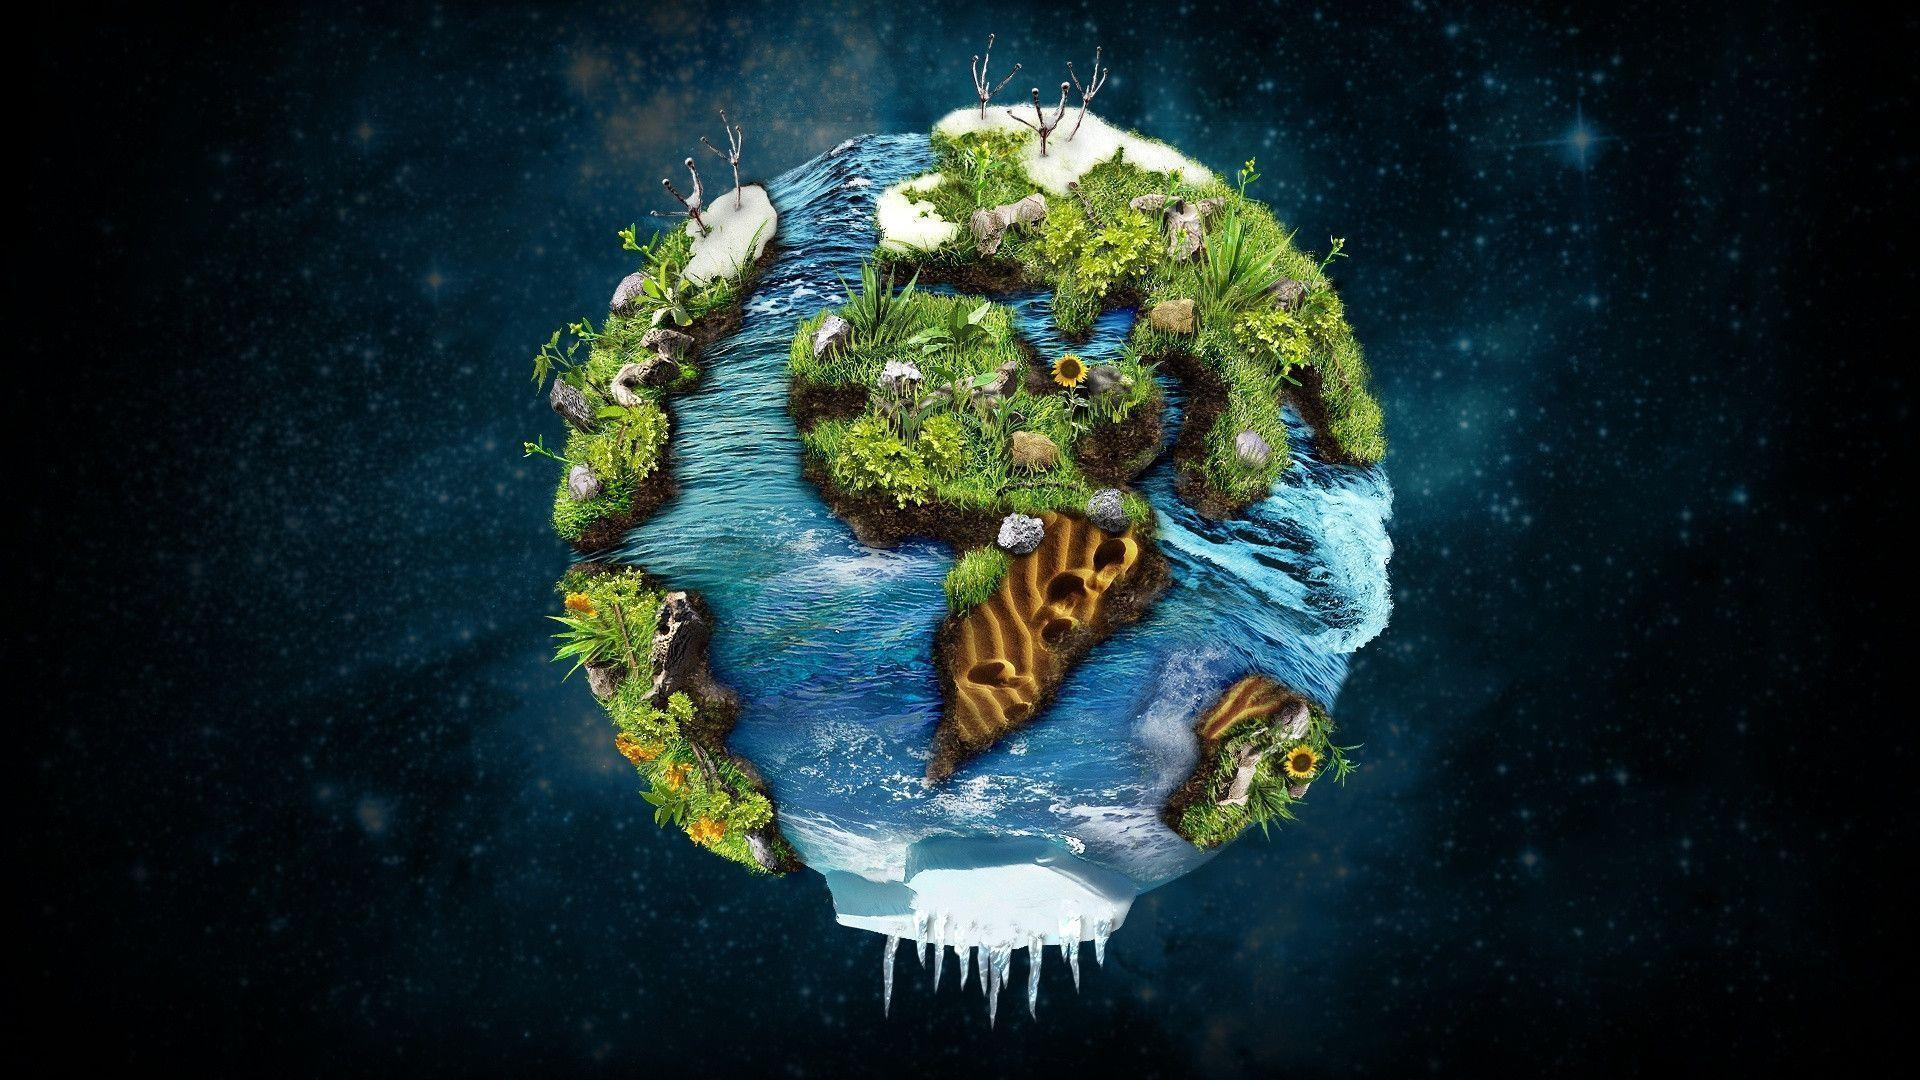 Earth wallpaper 184818